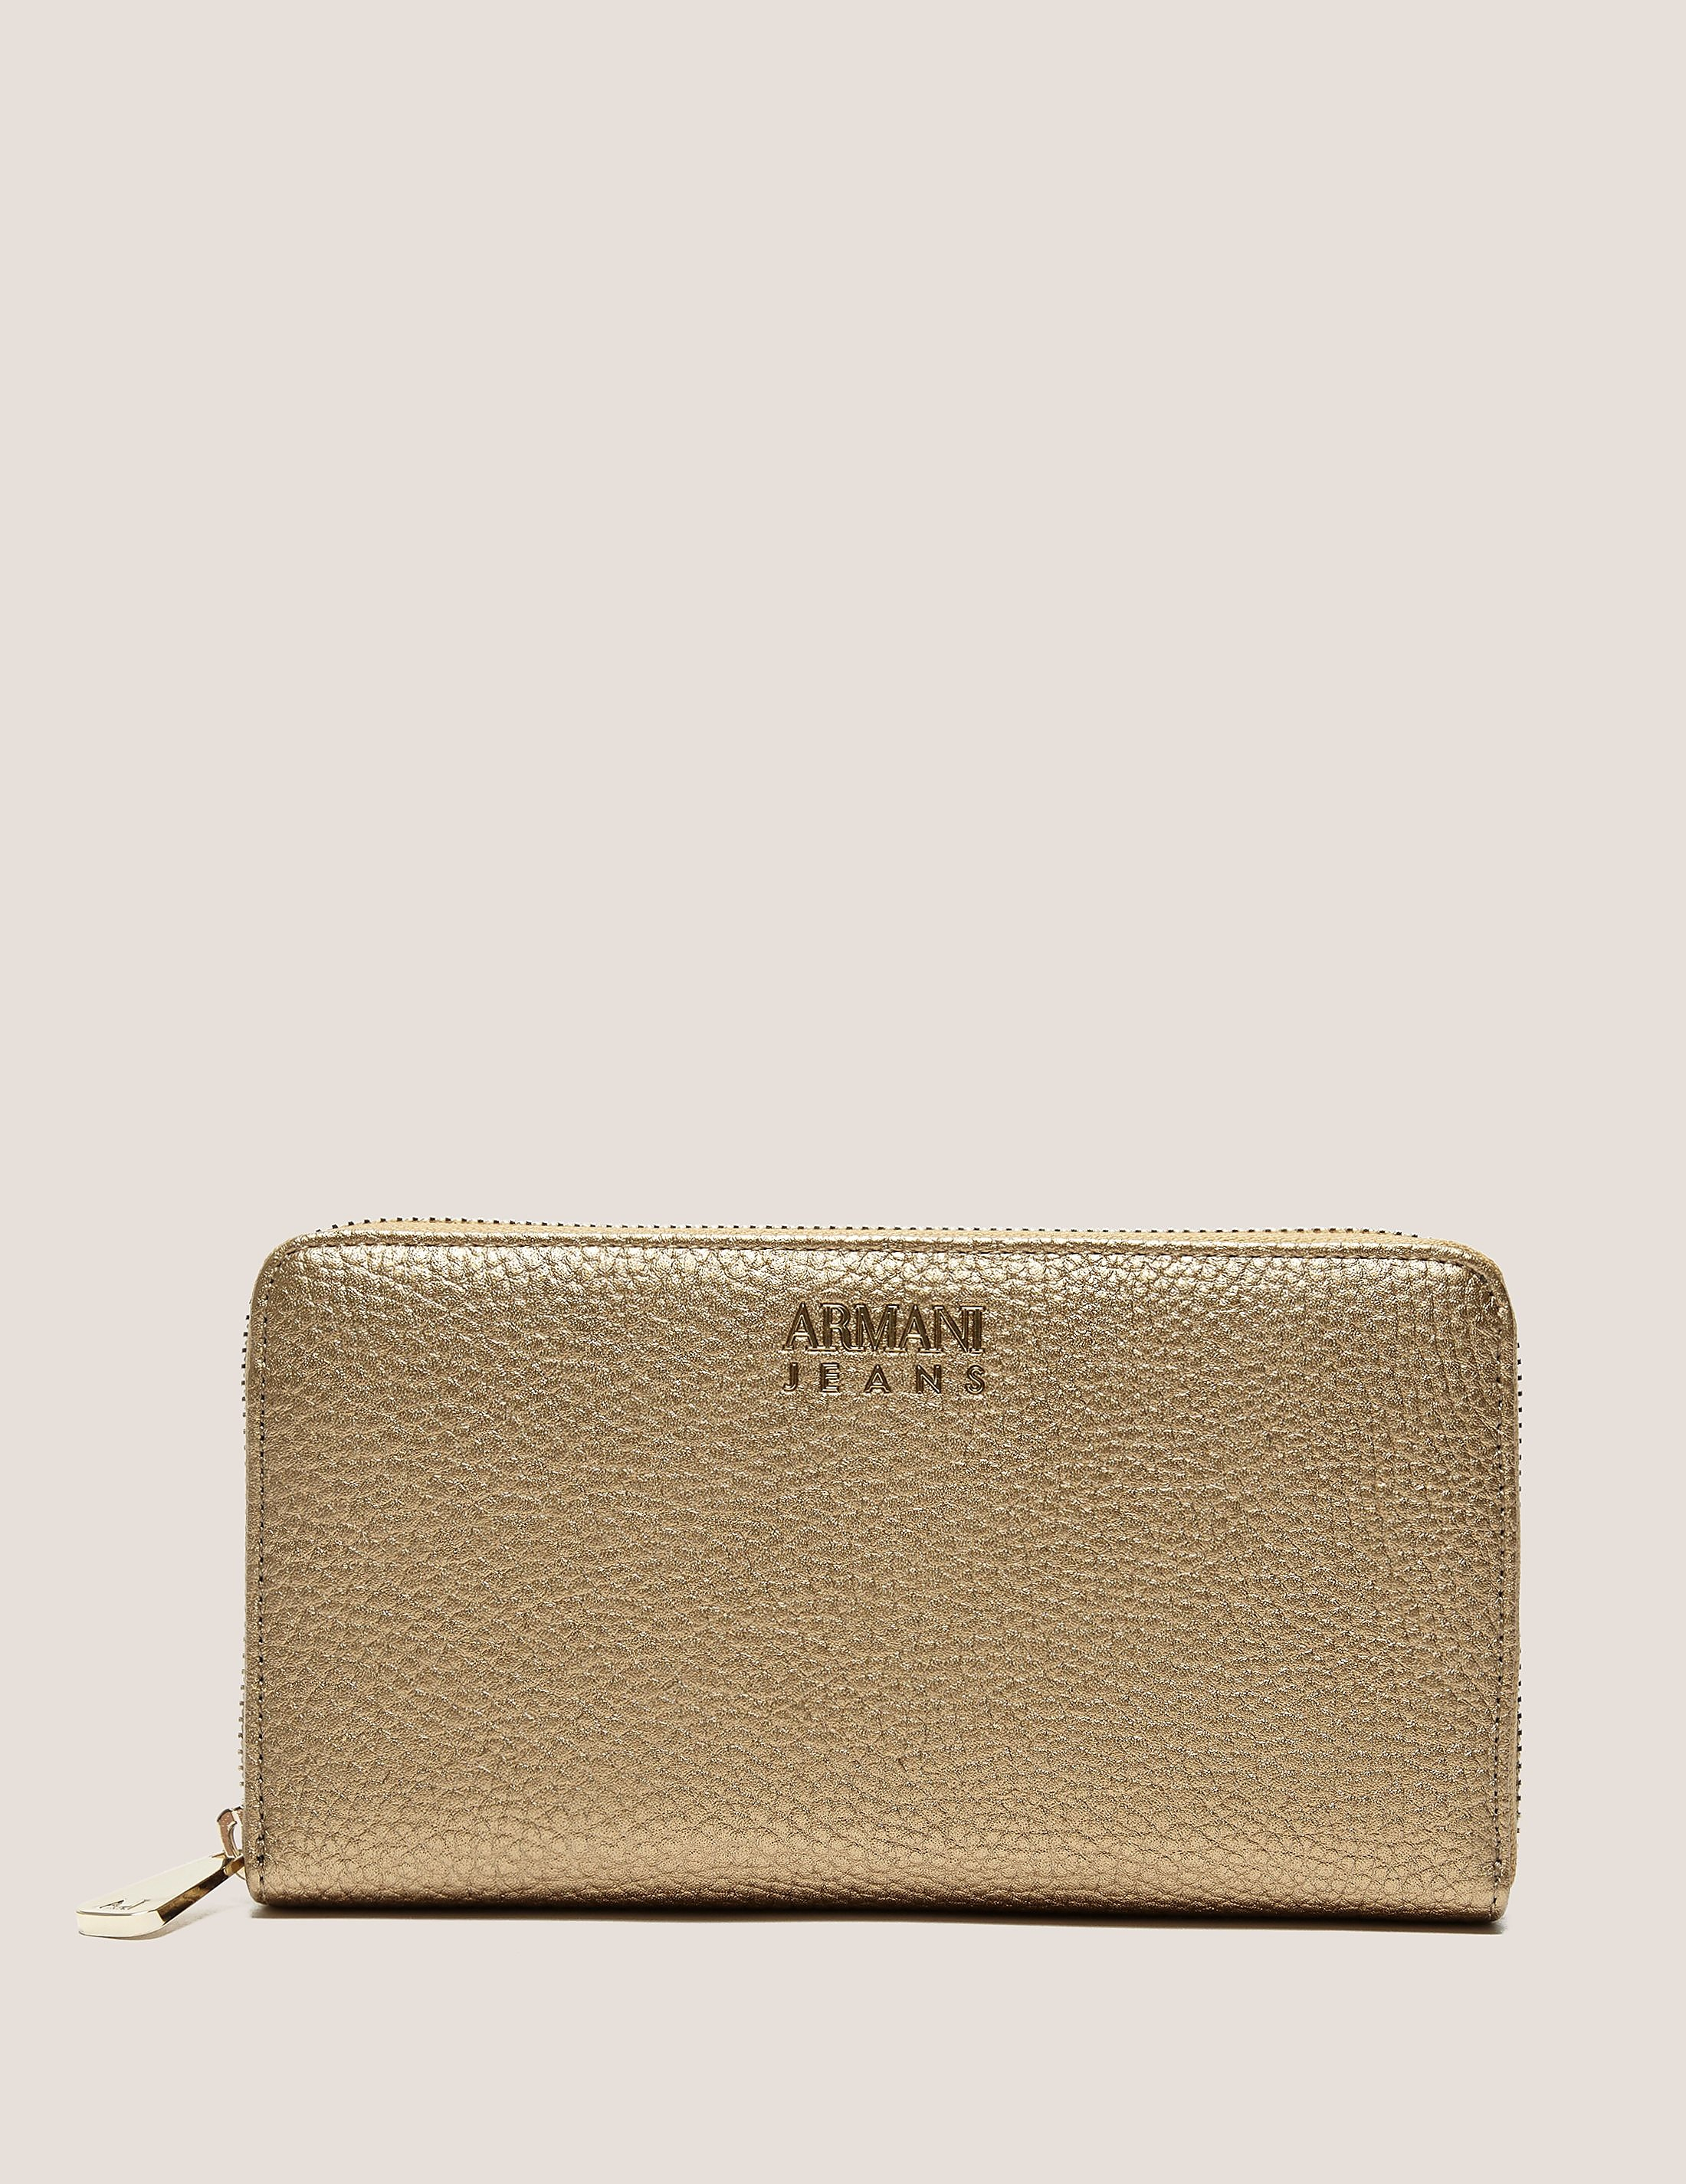 Armani Jeans Metallic Zip Purse